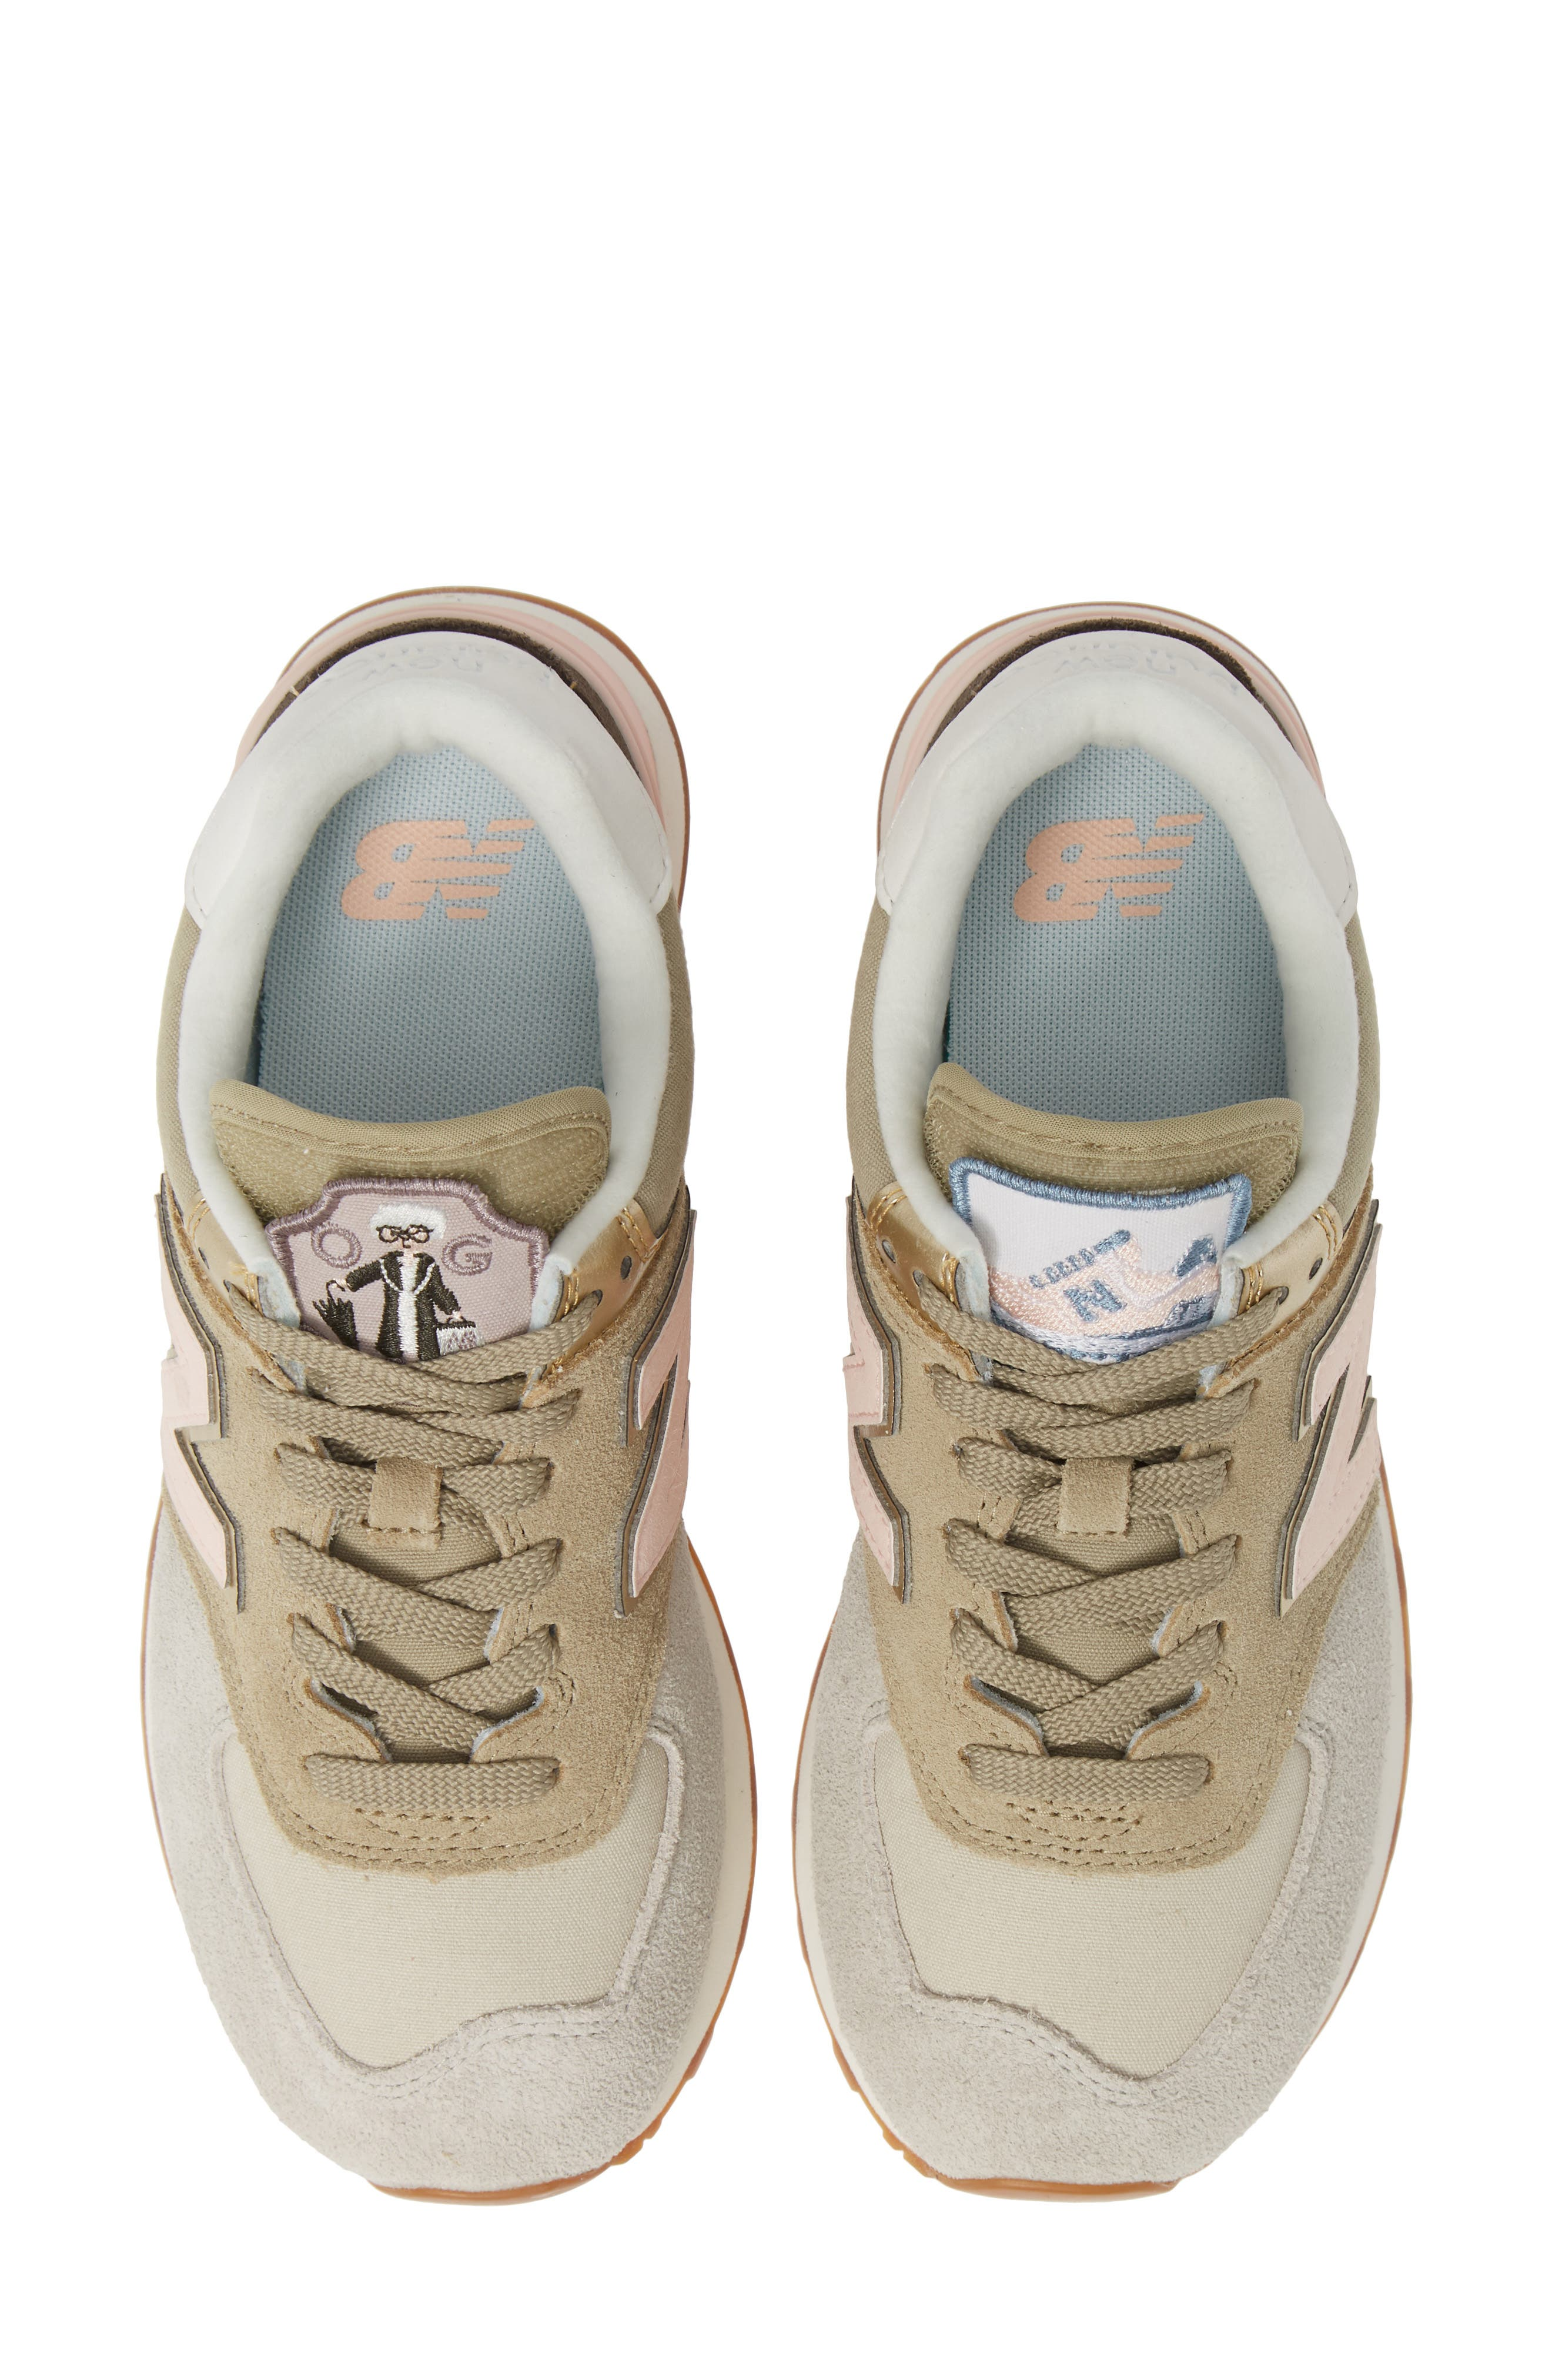 newest 16739 5ce51 New Balance Women s 574 Iconic Patch Low-Top Sneakers In Light Cliff Grey